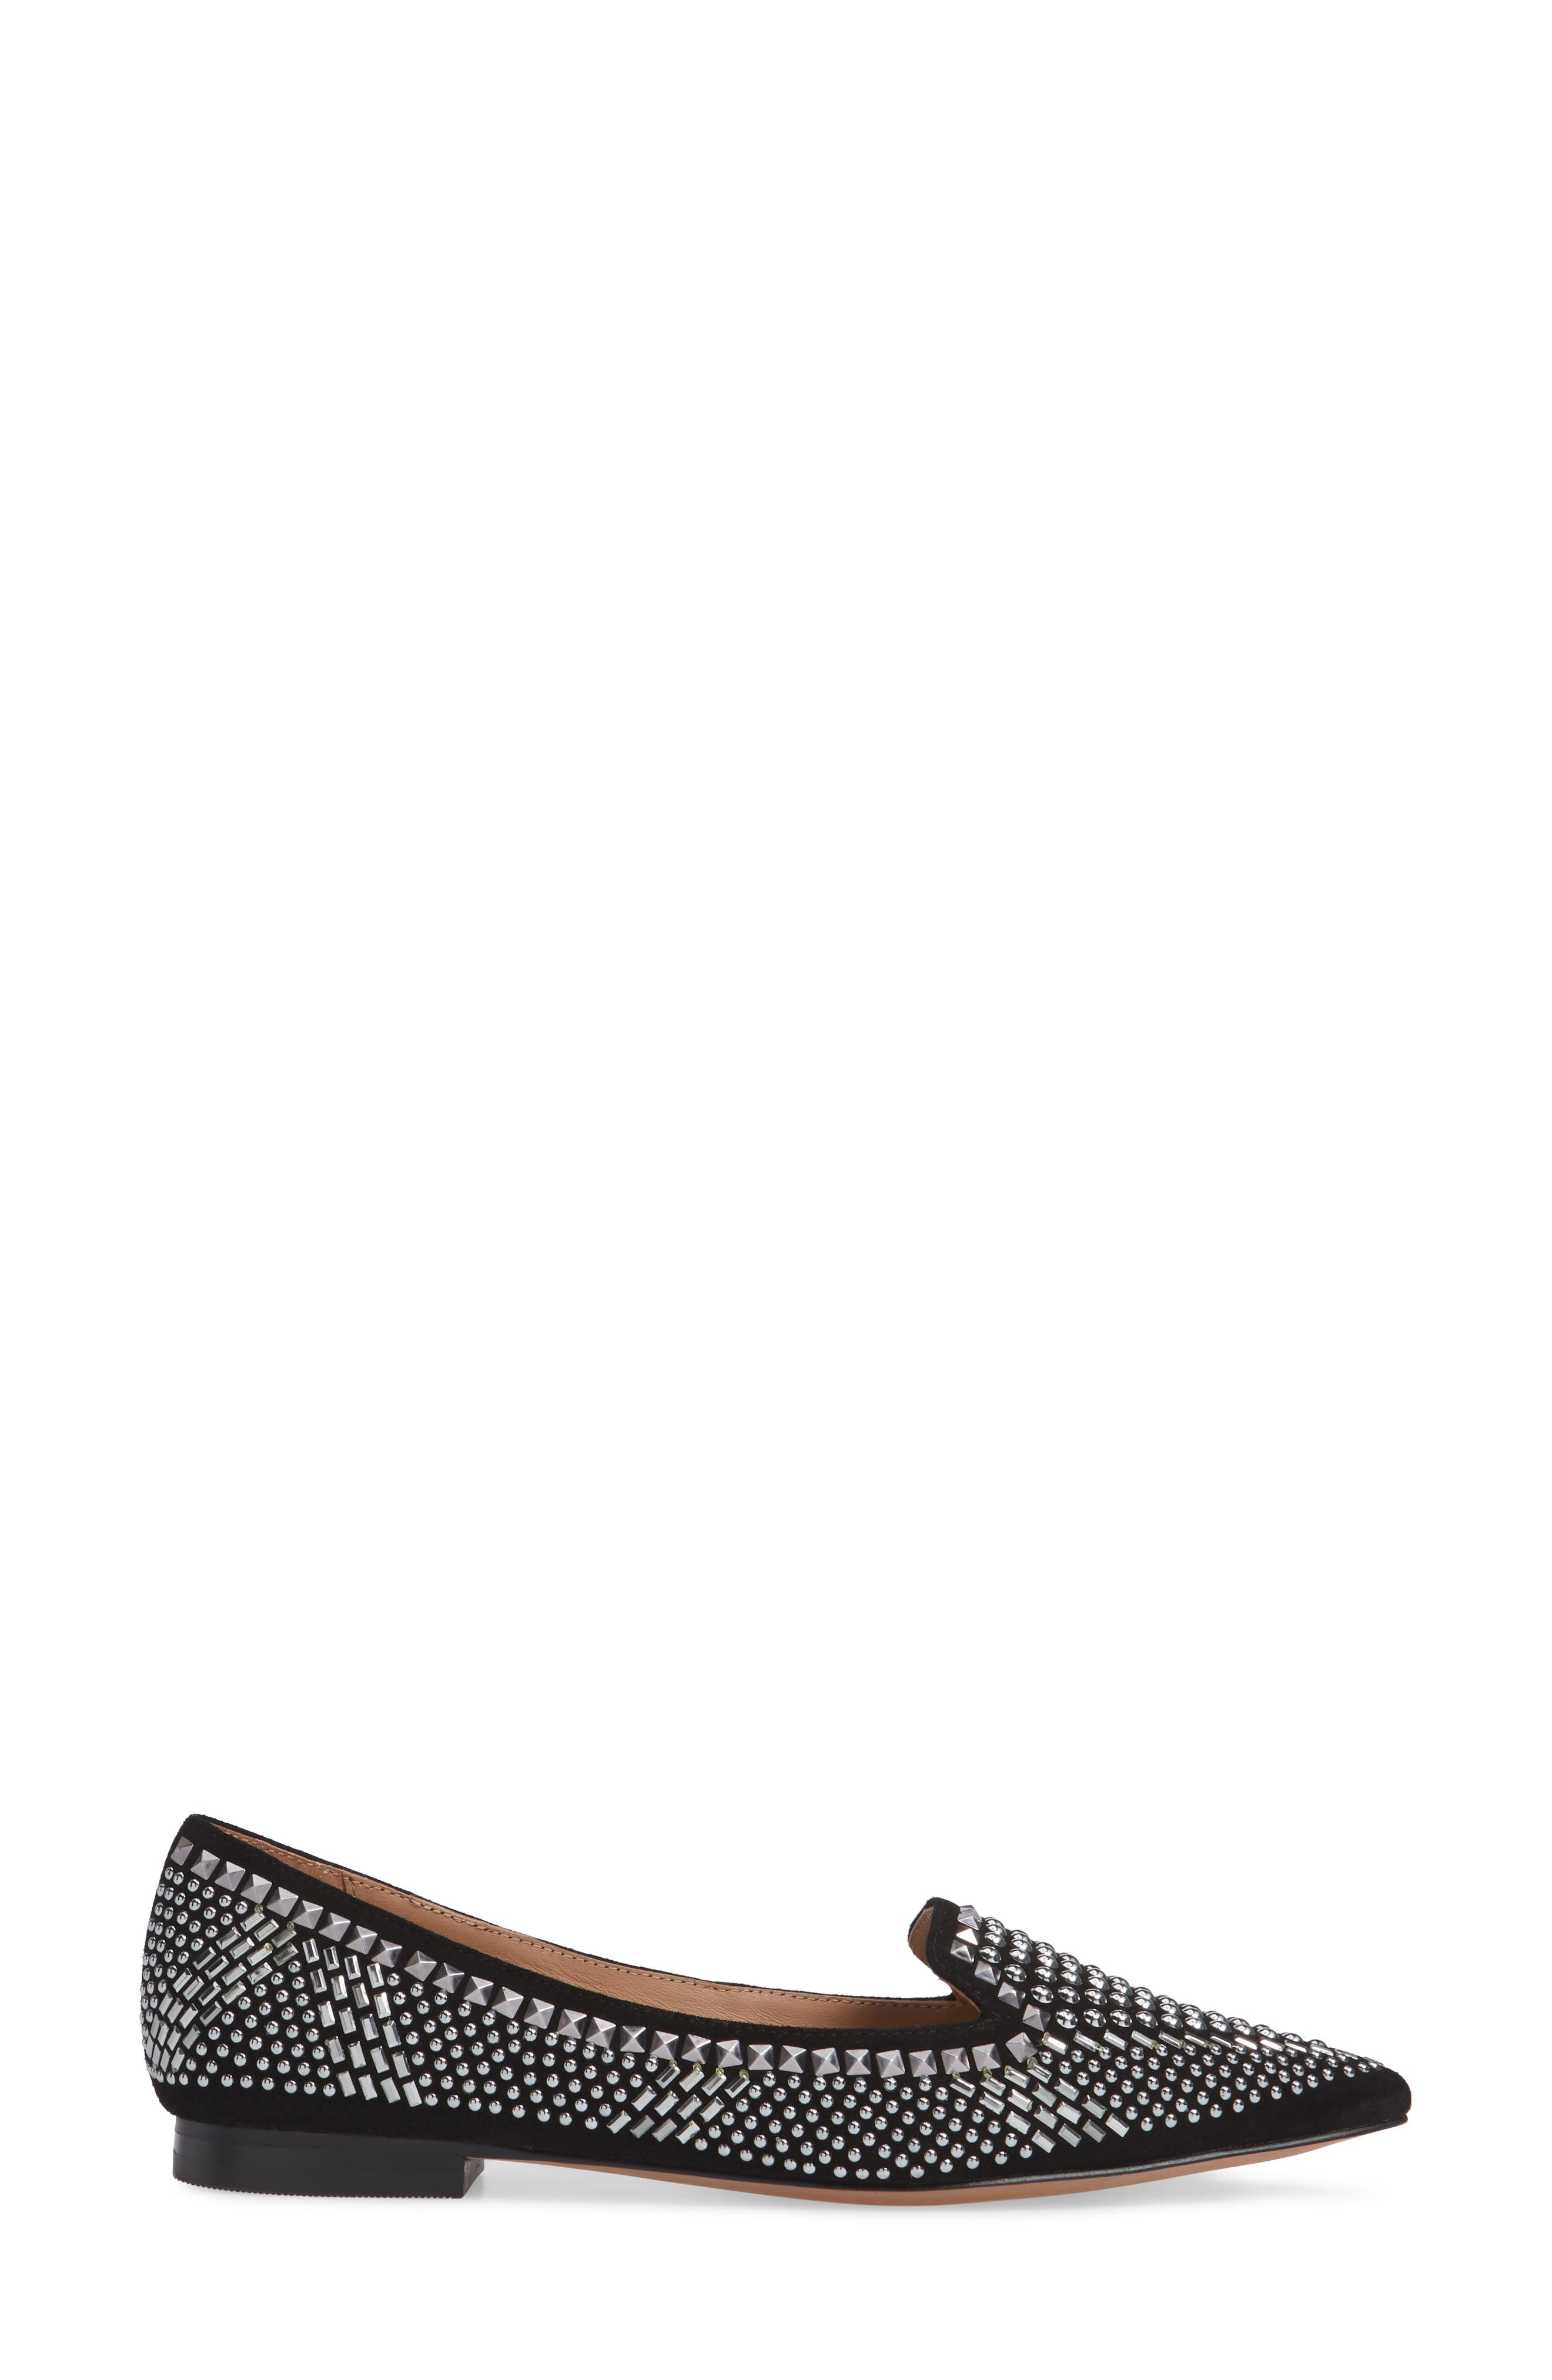 LINEA PAOLO, Portia Studded Loafer, Alternate thumbnail 3, color, BLACK SUEDE